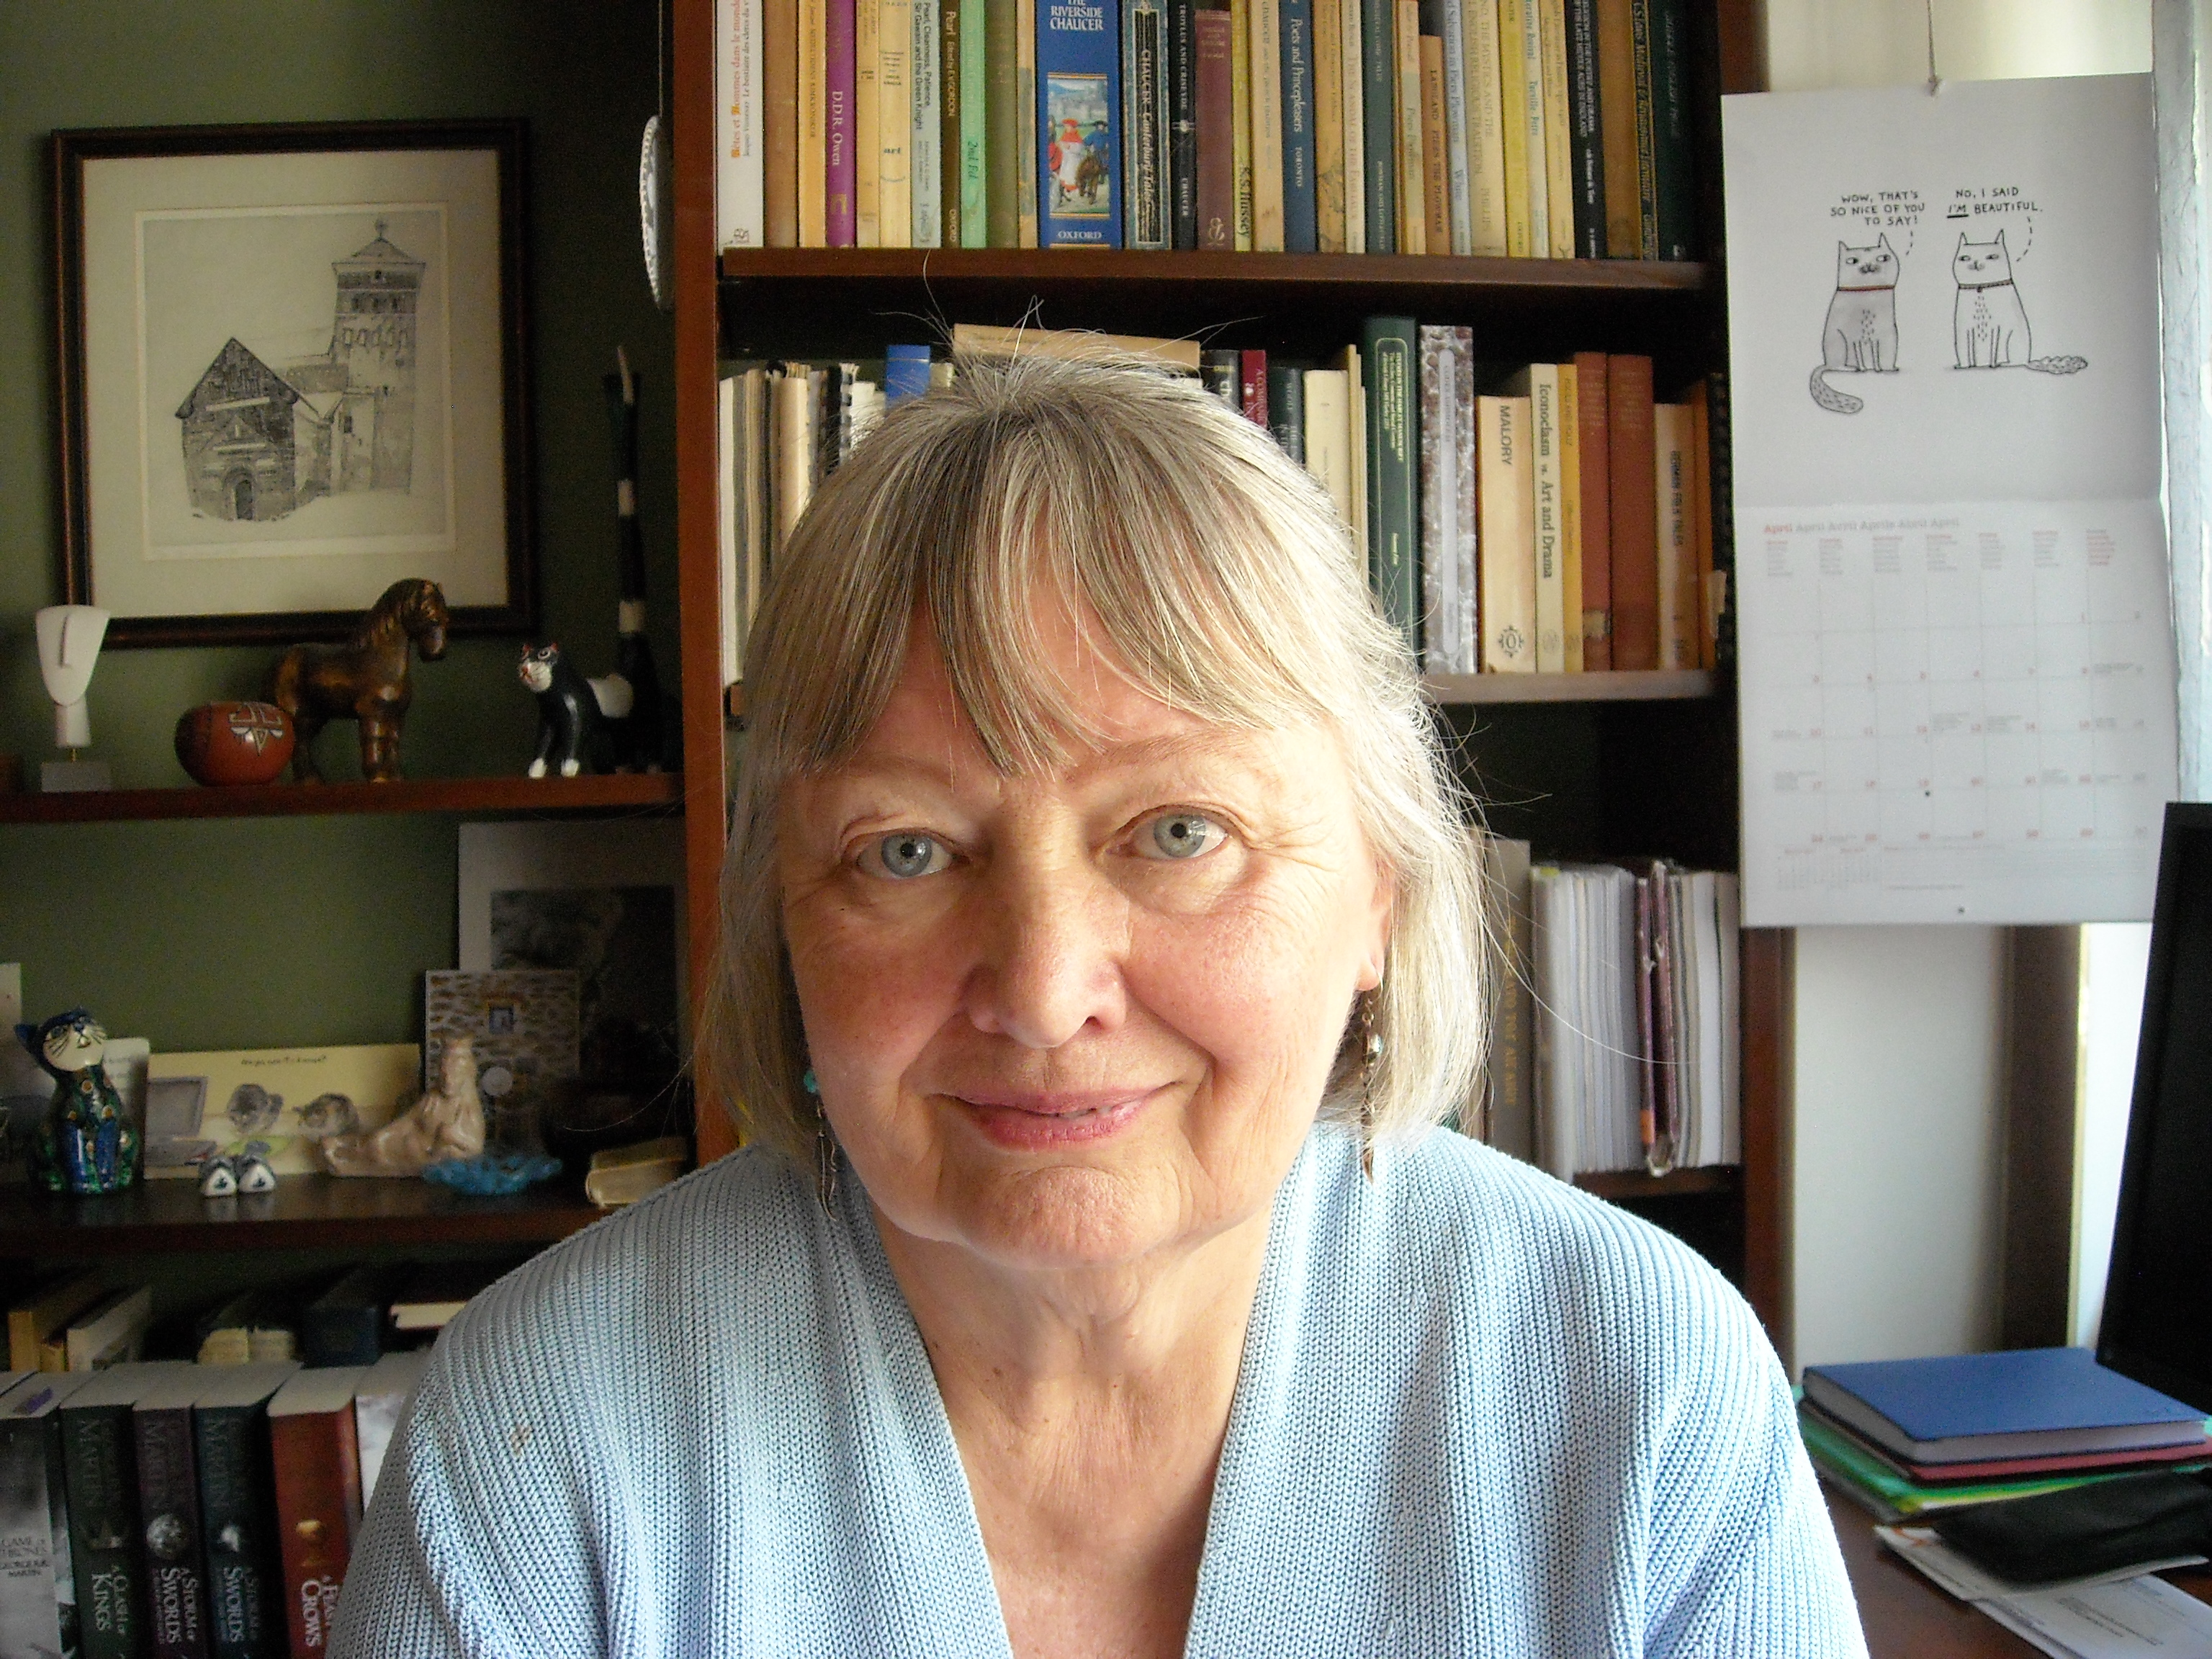 Karin Boklund-Lagopoulou, Professor Emeritus of English and Comparative Literature, Theory of Literature and Methodology of Text Analysis, School of English Language and Literature